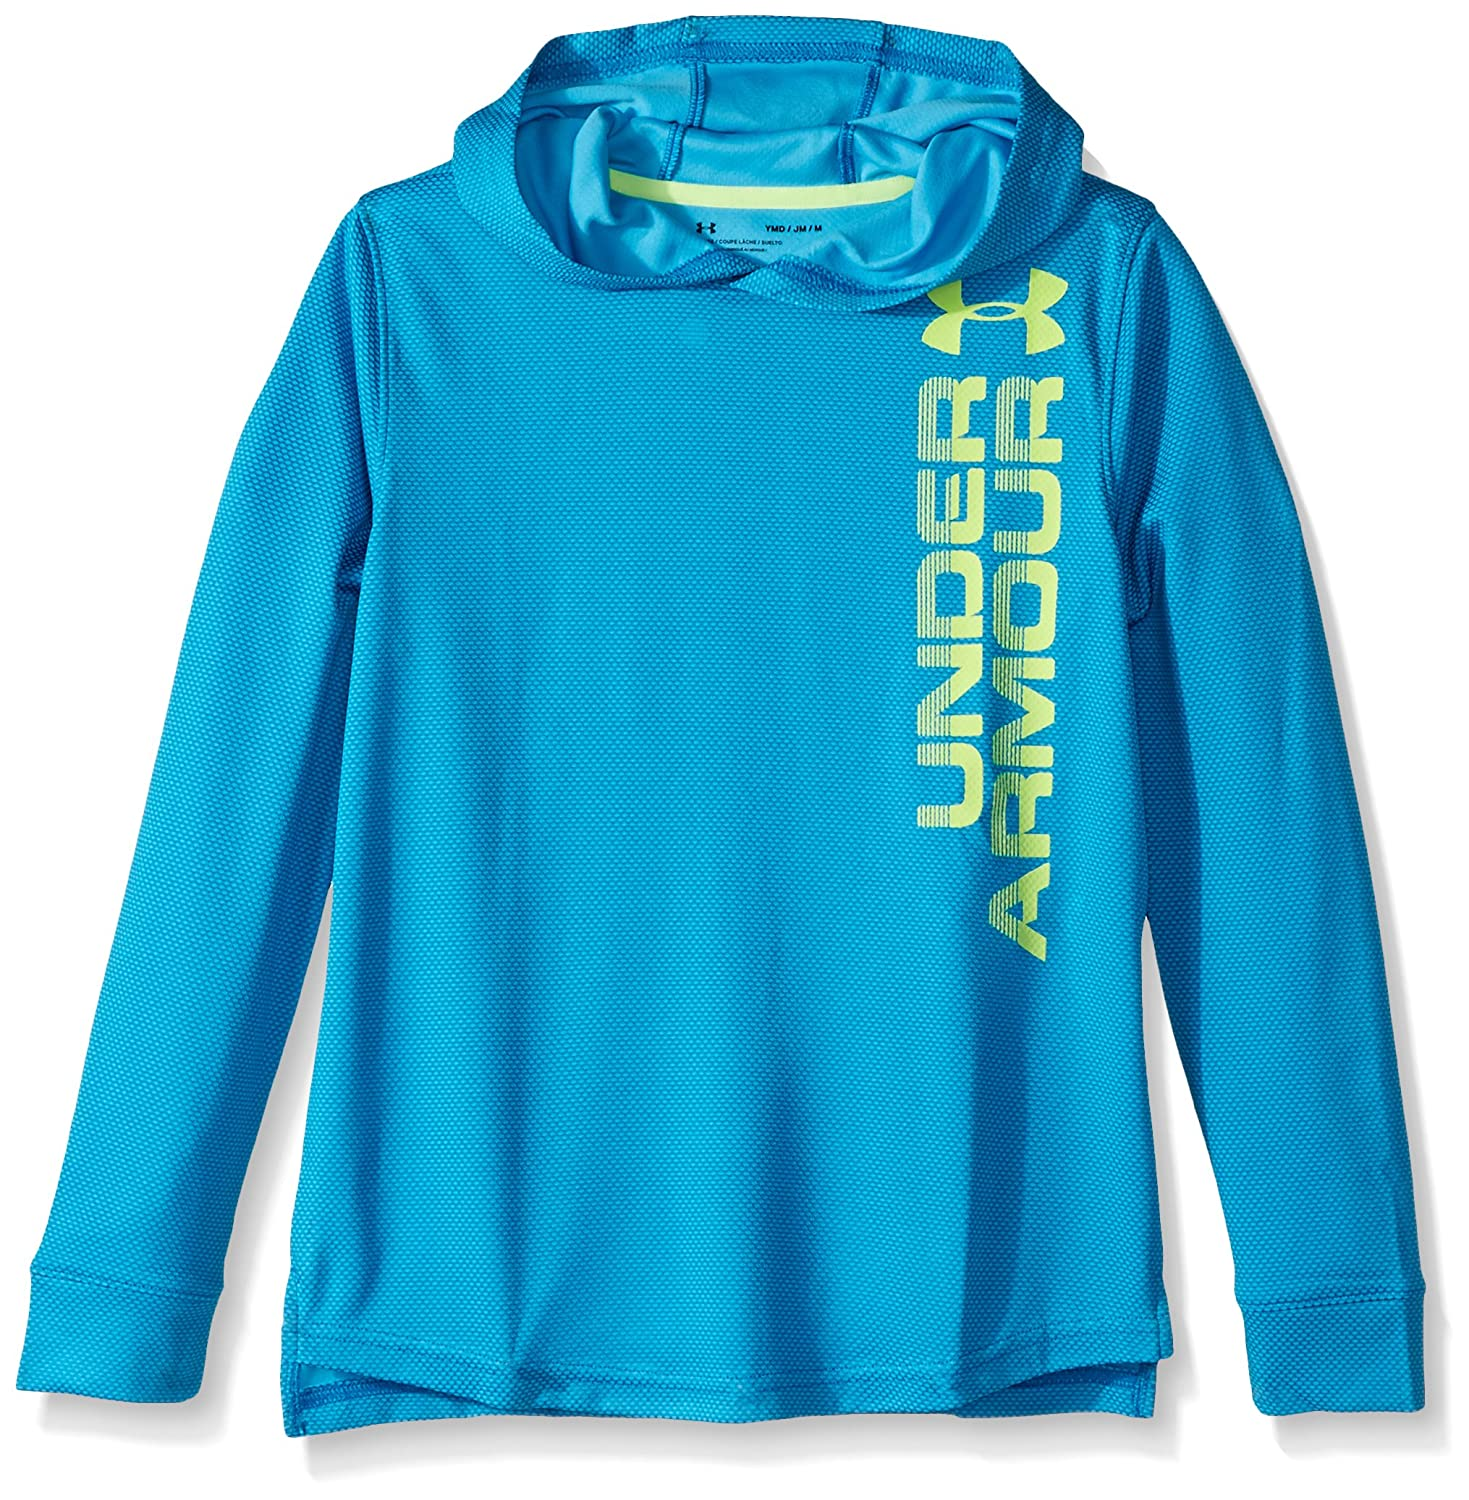 Under Armour Boys ' Textured Tech Hoody B01NBI85HY Youth Medium|Cruise Blue/Quirky Lime Cruise Blue/Quirky Lime Youth Medium